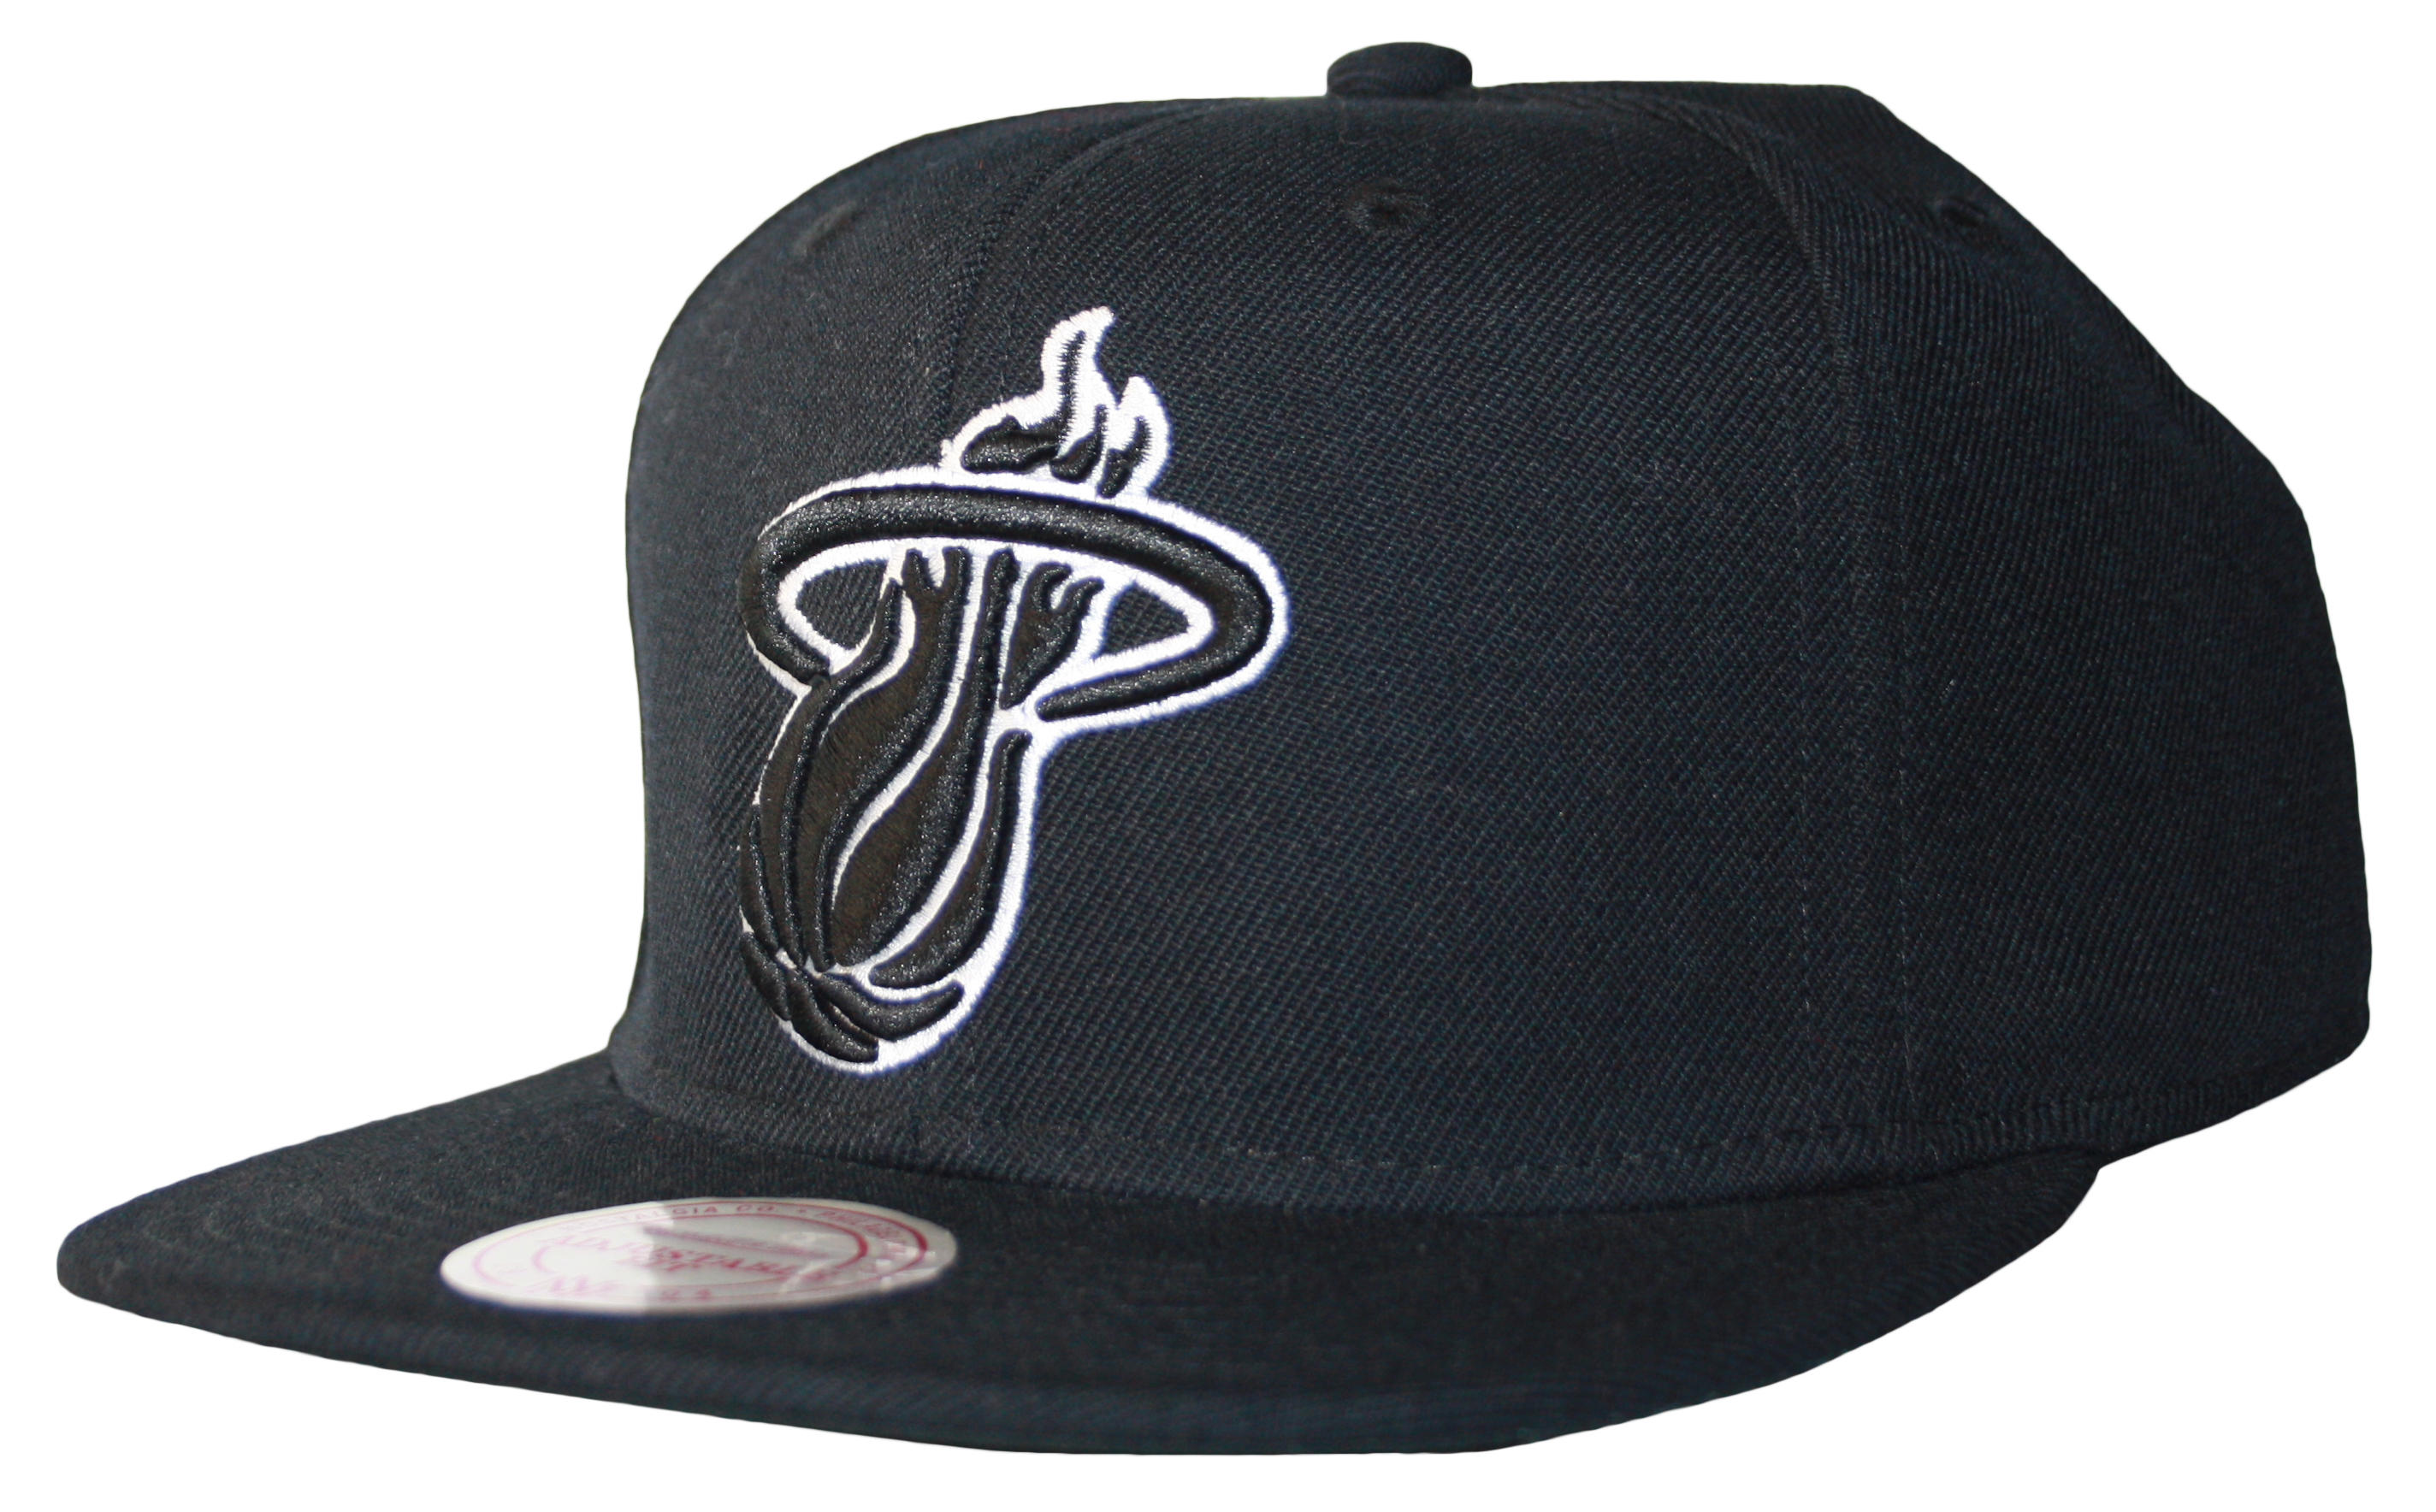 919b25cd06973 Mitchell   Ness Miami Heat Black White Logo Series Snapback